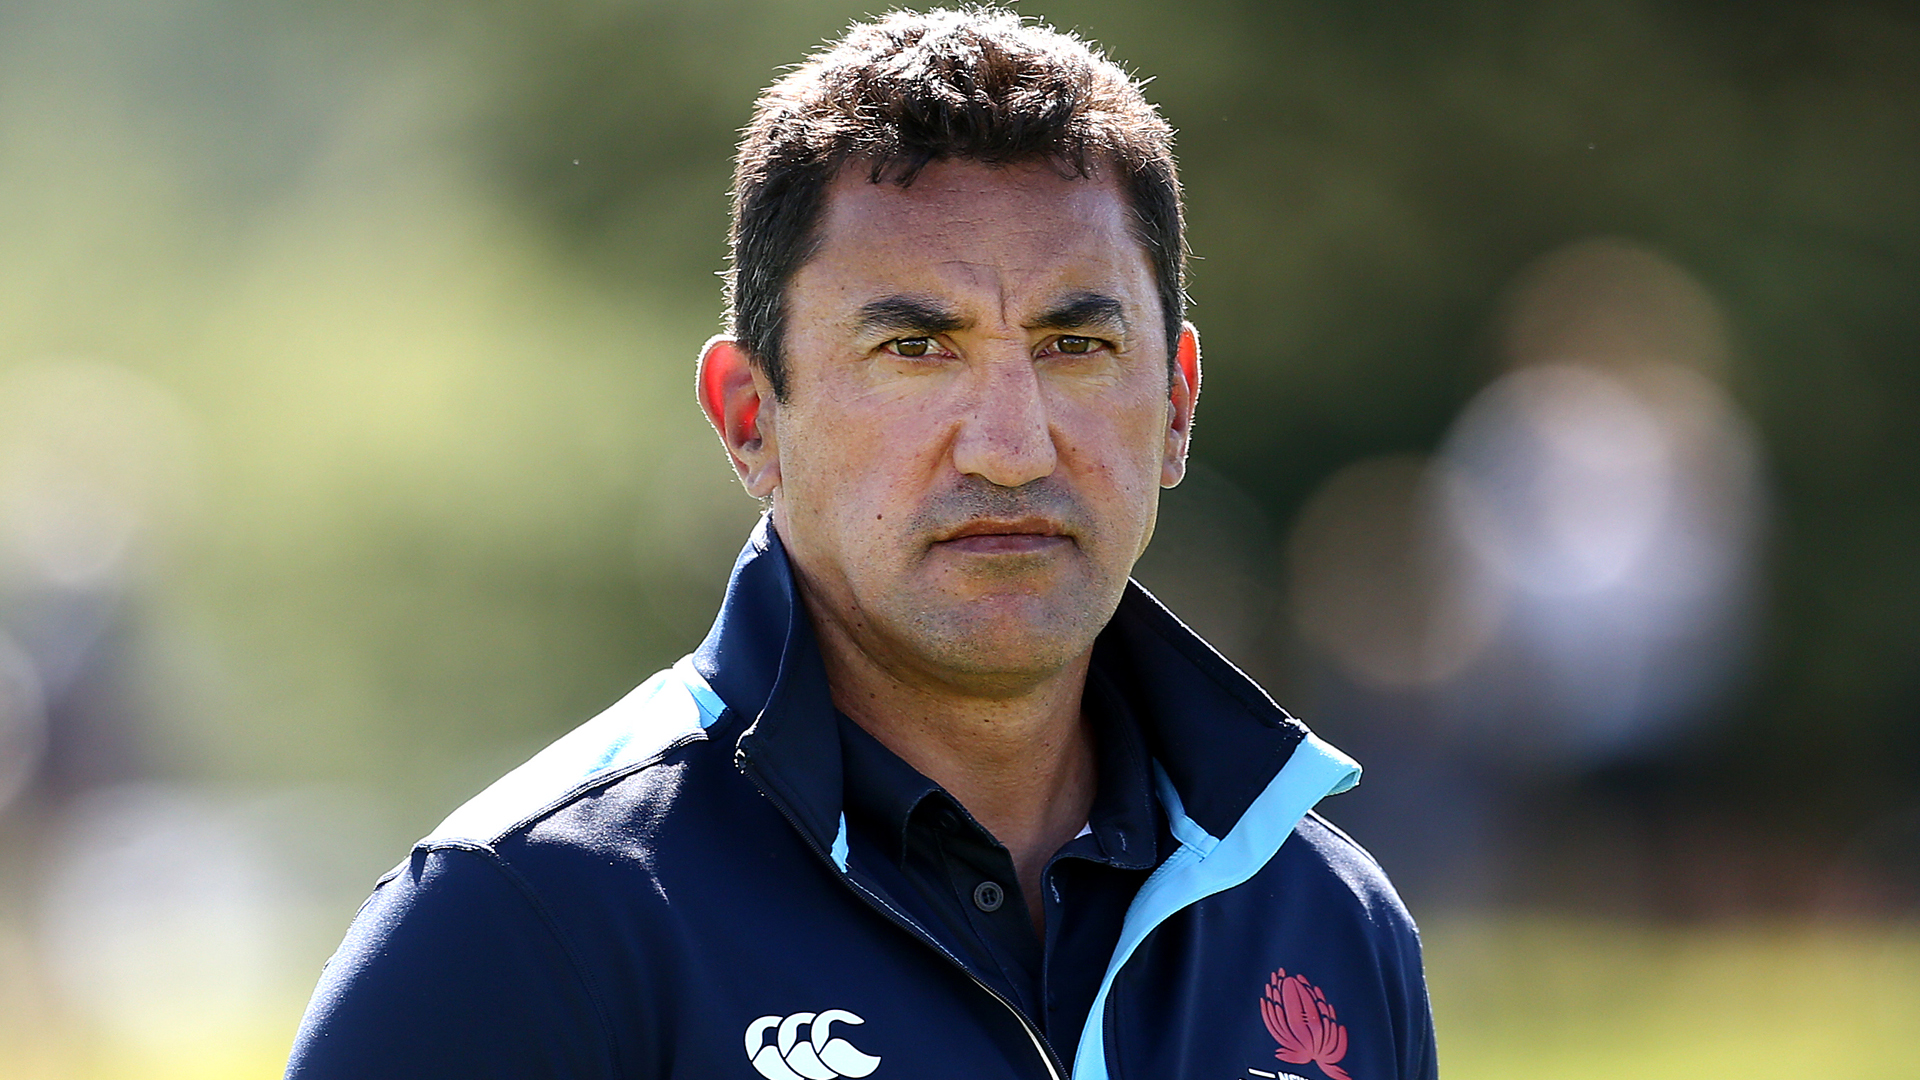 Days out from the start of the Super Rugby season, Daryl Gibson signed a contract extension with the Waratahs.